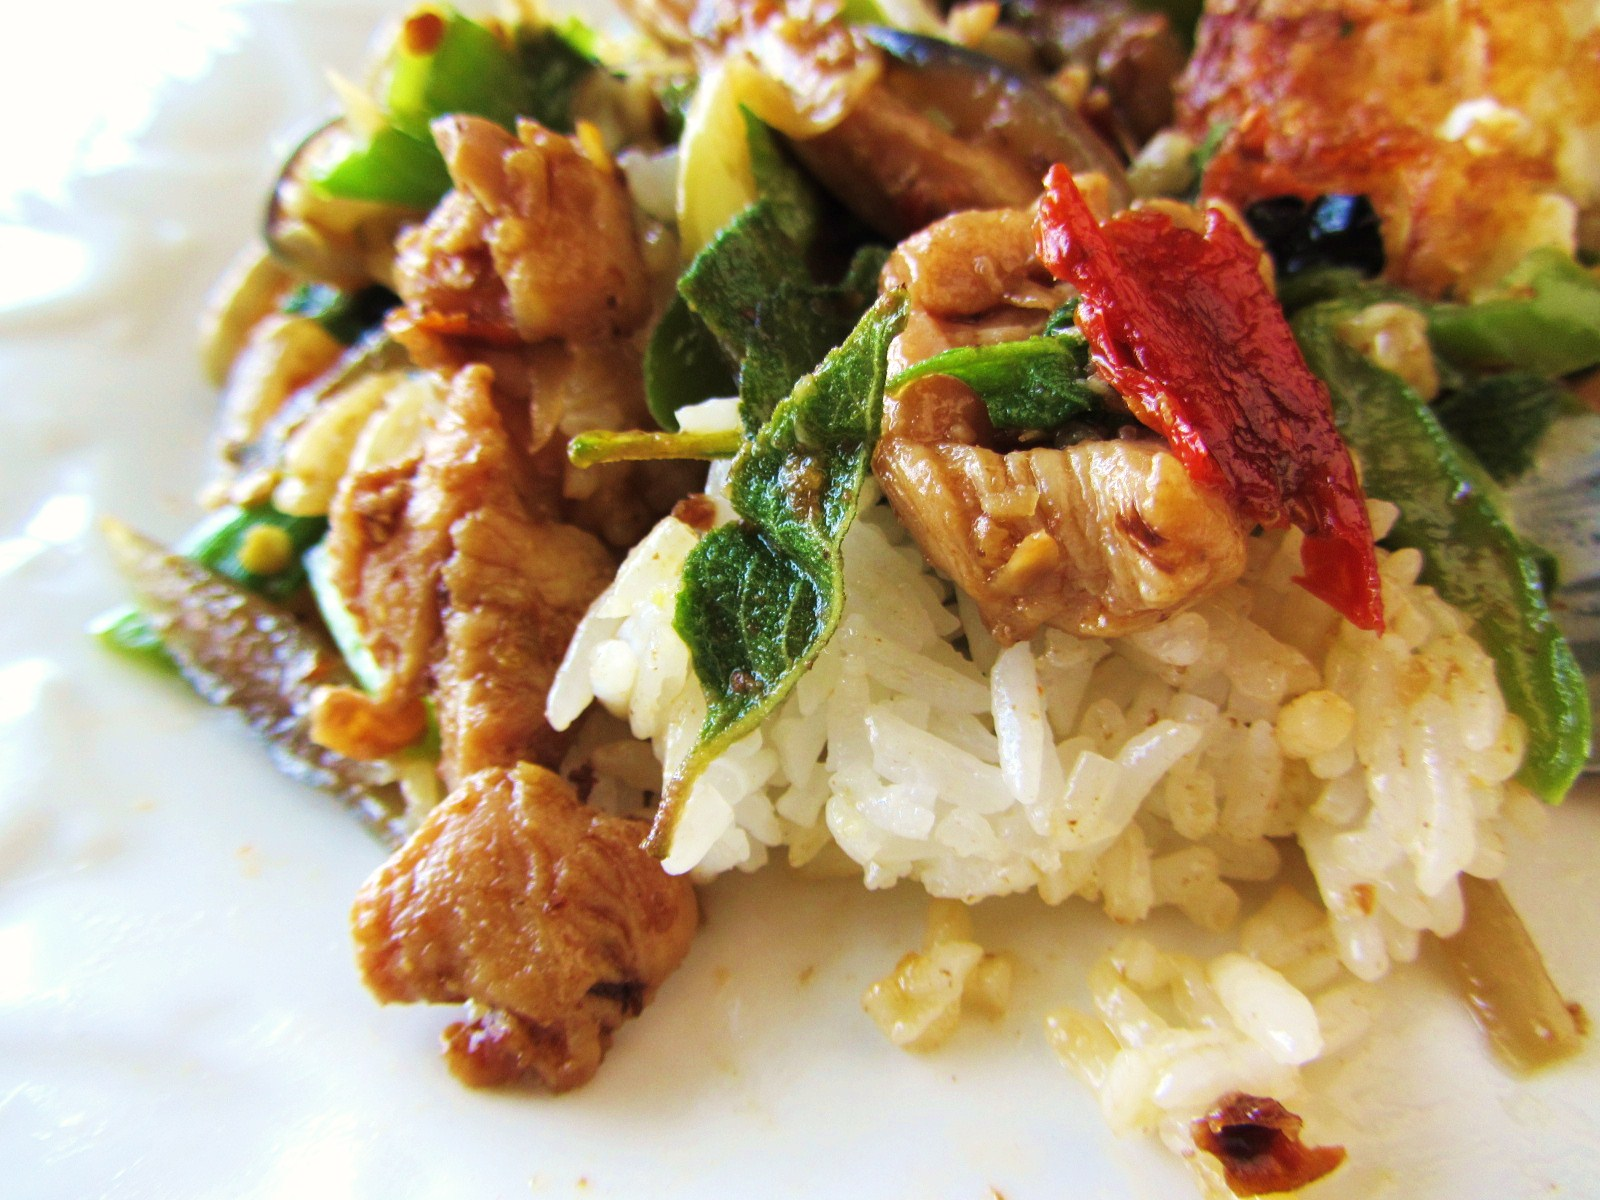 Let's eat.....simple!: Gai Pad Krapow / Thai Spicy Basil Chicken